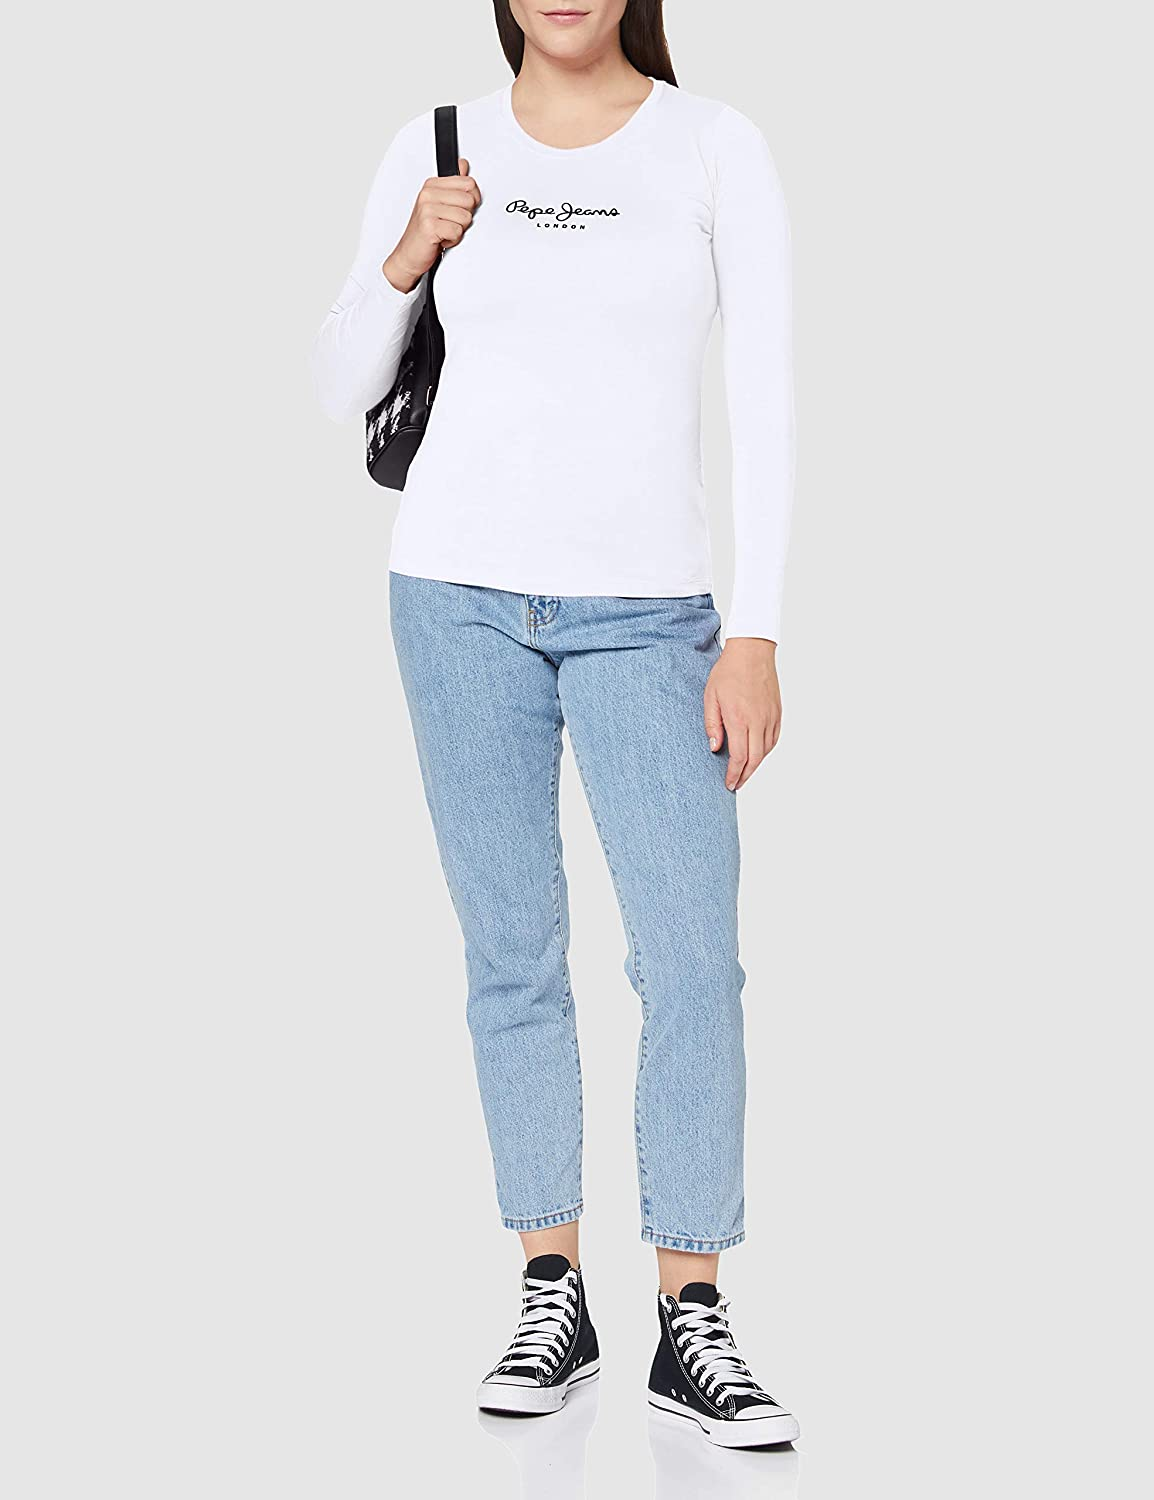 Pepe Jeans T-Shirt Donna